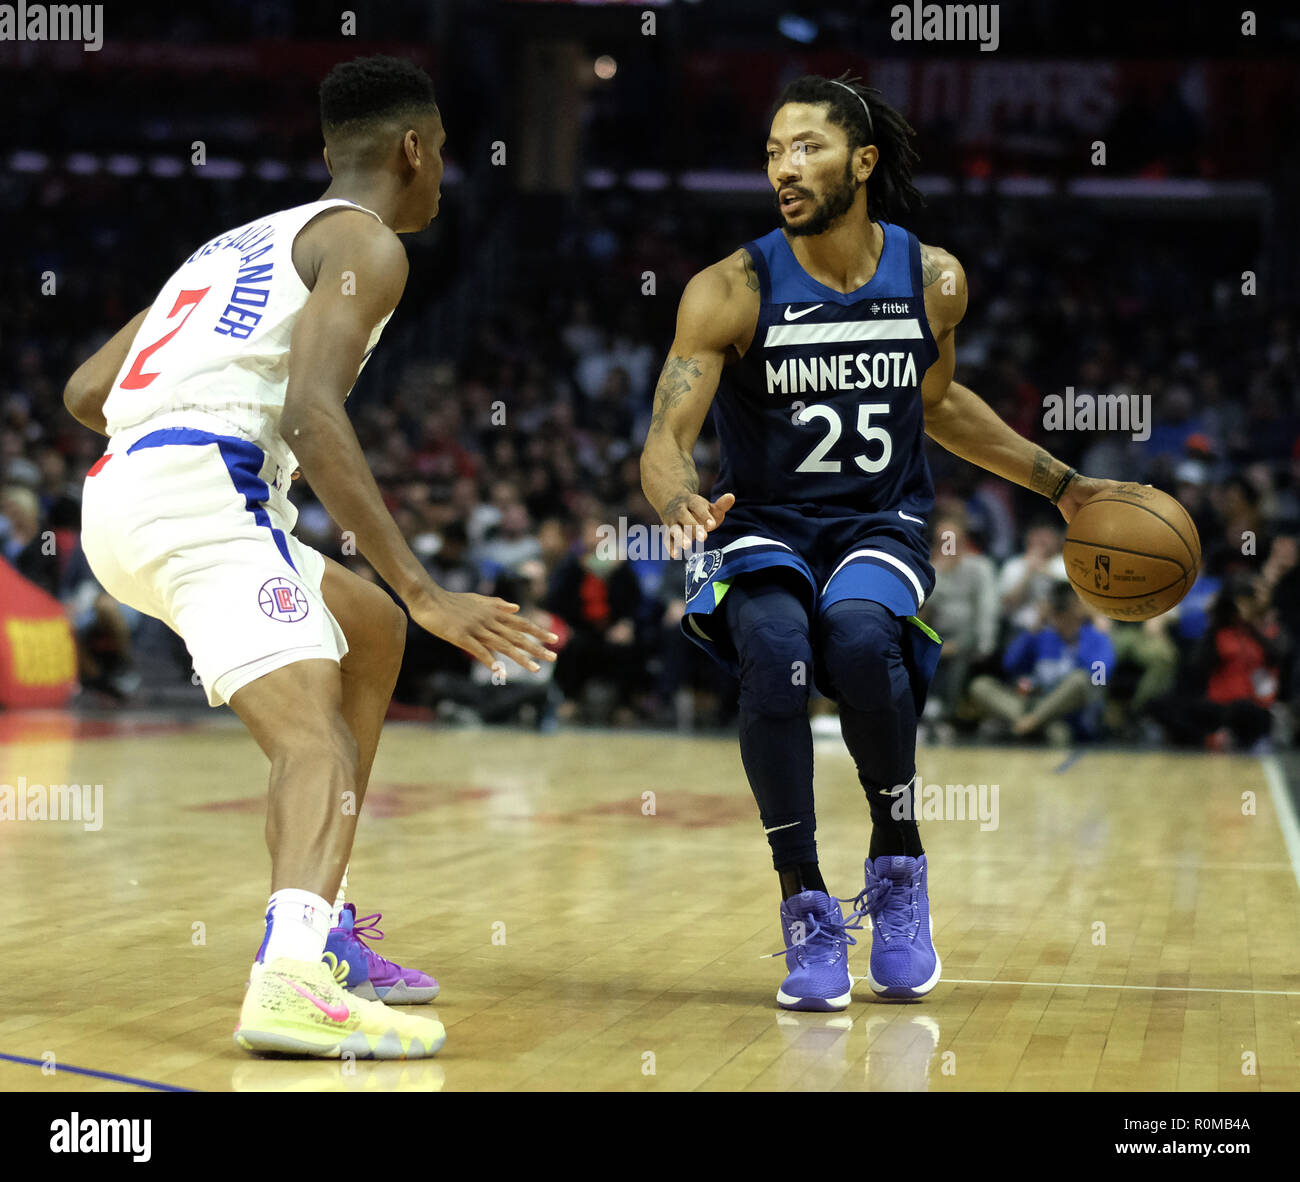 e21cd2590a8c Minnesota Timberwolves  Derrick Rose (25) dribbles against Los Angeles  Clippers  Shai Gilgeous-Alexander (2) during an NBA basketball game Monday